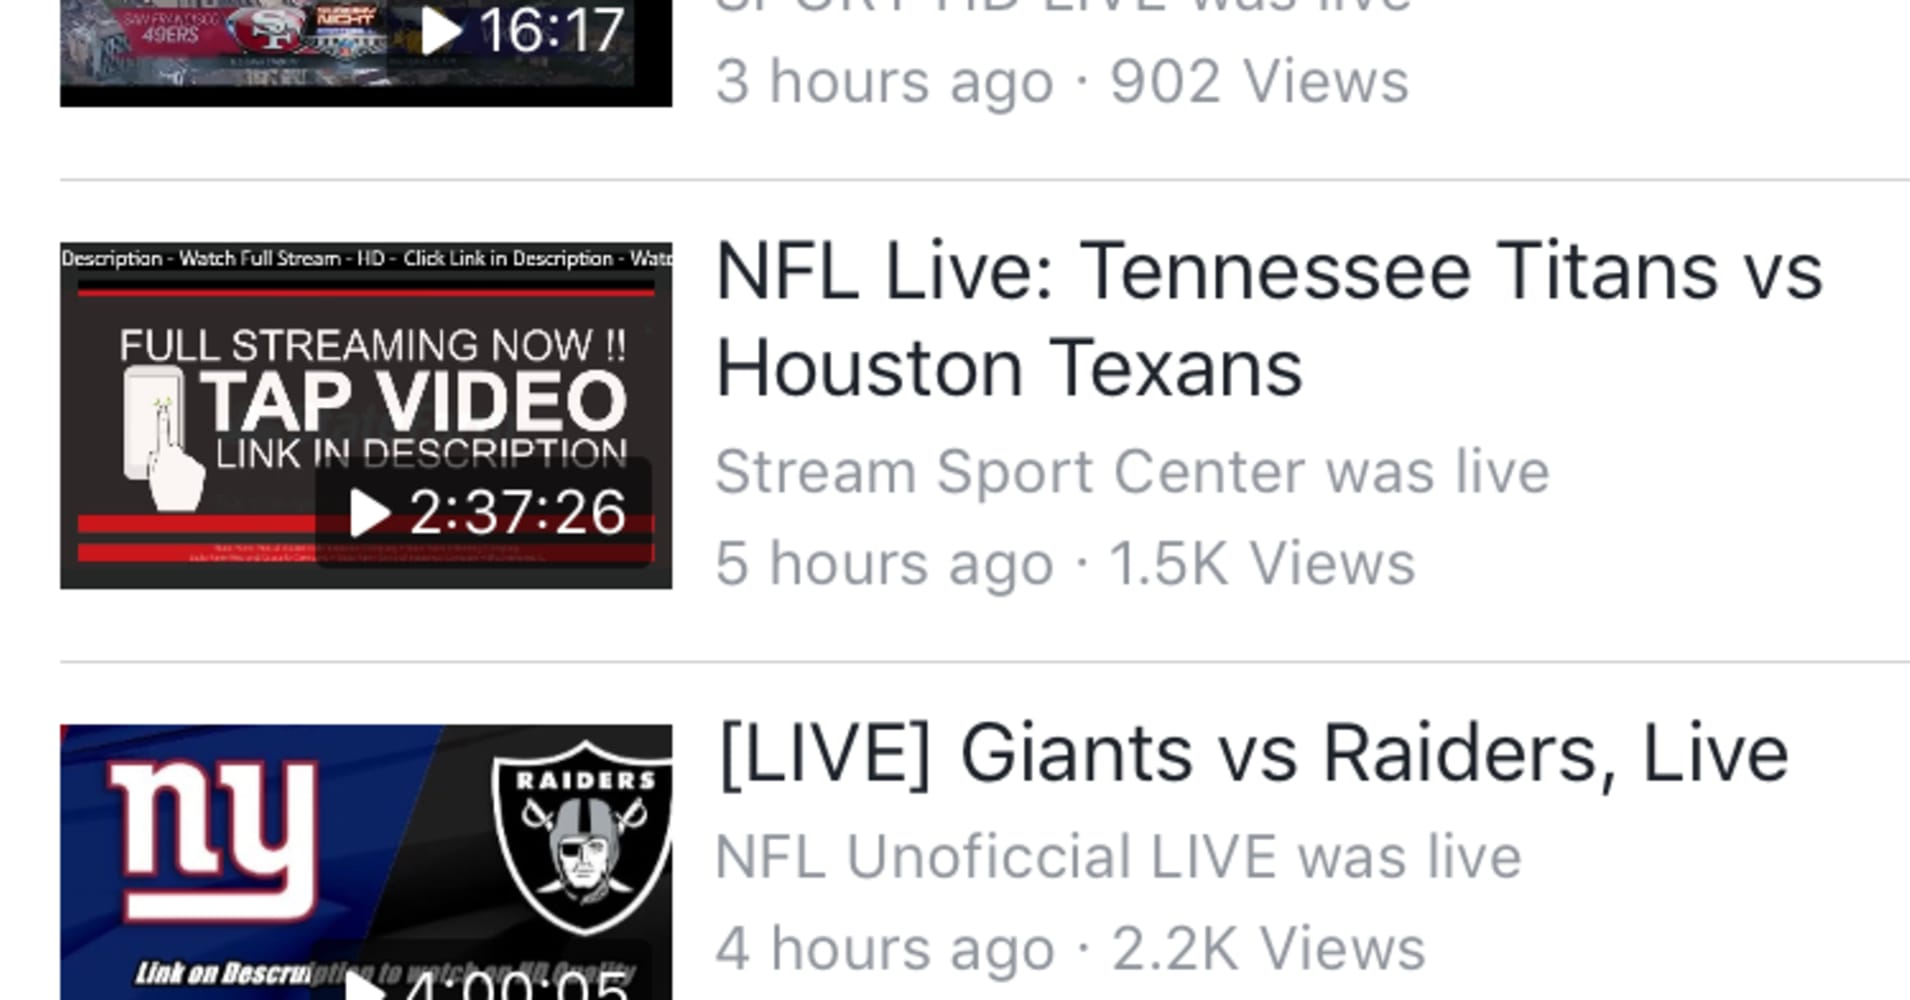 Facebook and YouTube are full of pirated video streams of live NFL games